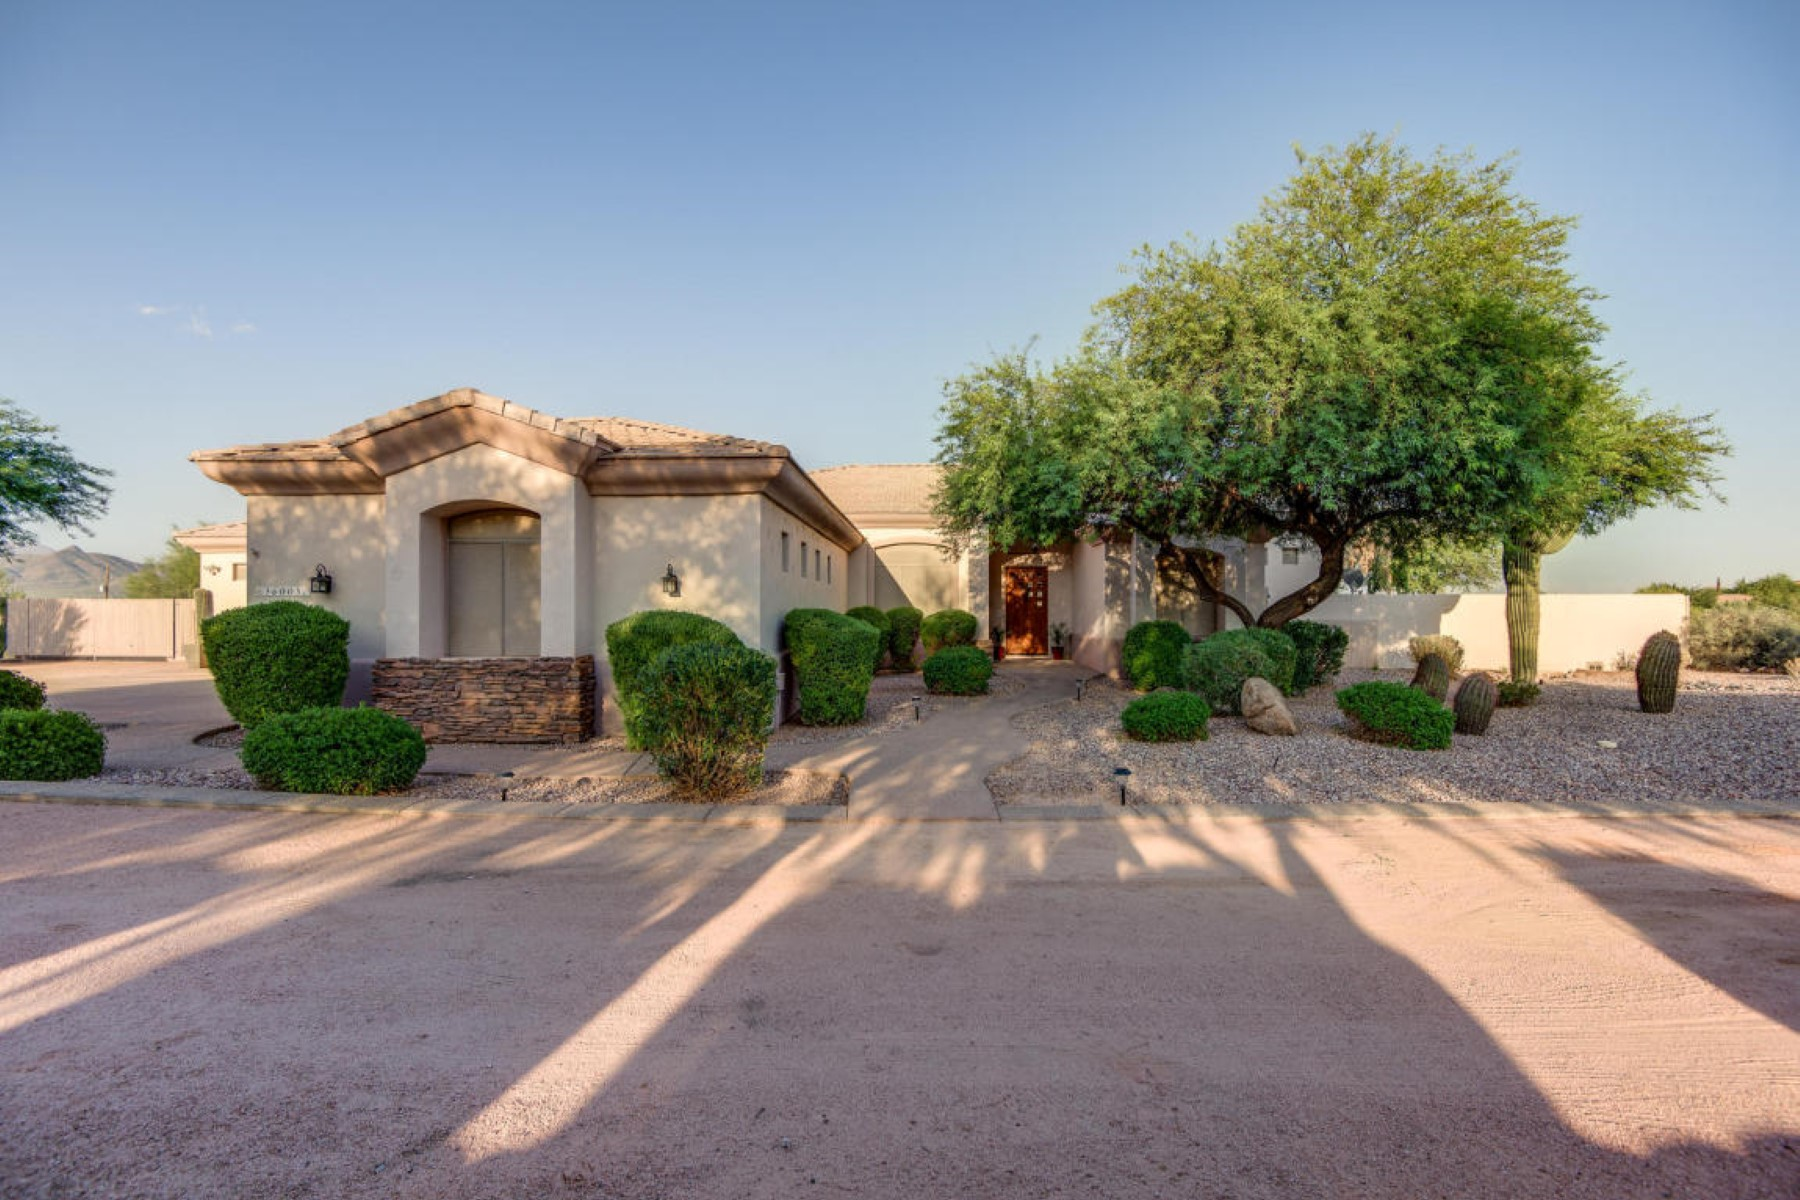 Villa per Vendita alle ore Single level custom home with amazing mountain views 36005 N 15Tth Ave Phoenix, Arizona, 85086 Stati Uniti